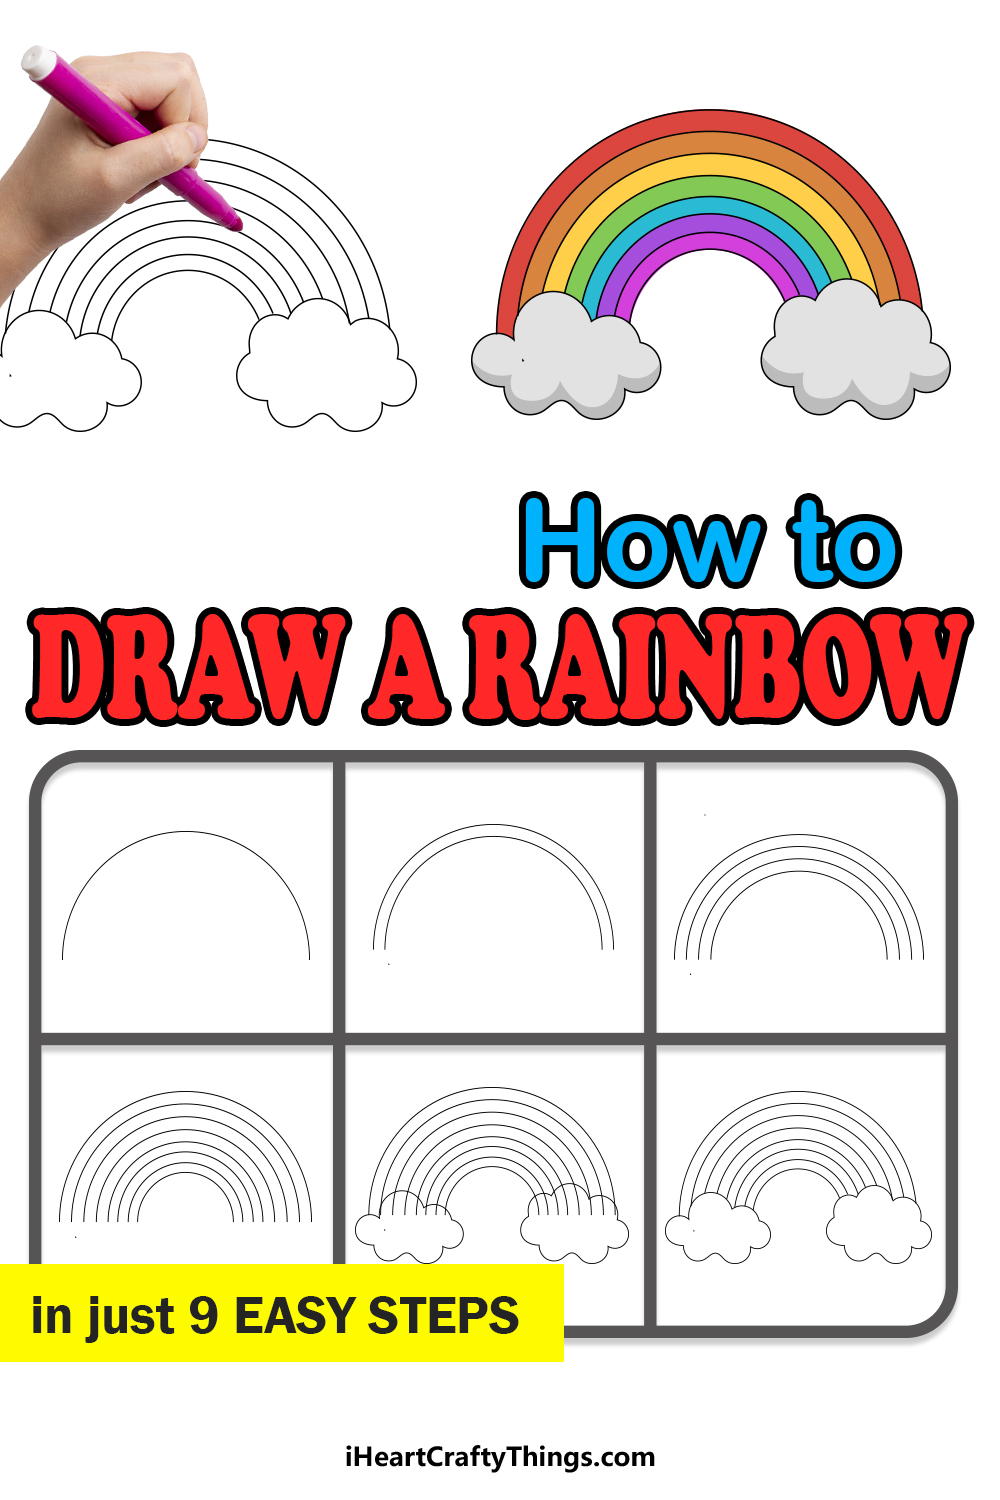 how to draw a rainbow in 9 steps